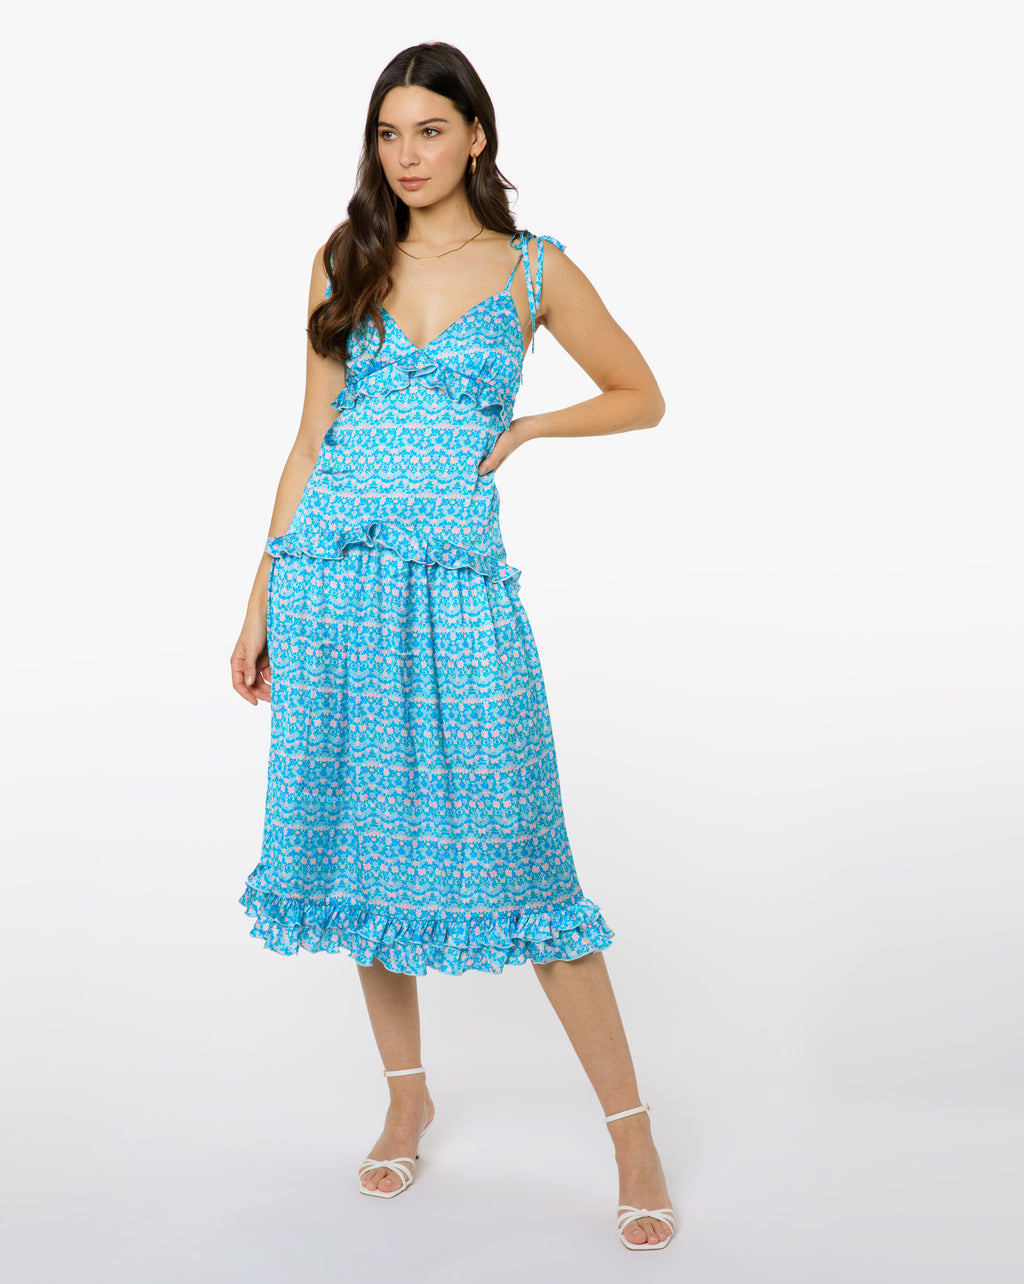 Georgia Dress - Eden Blue